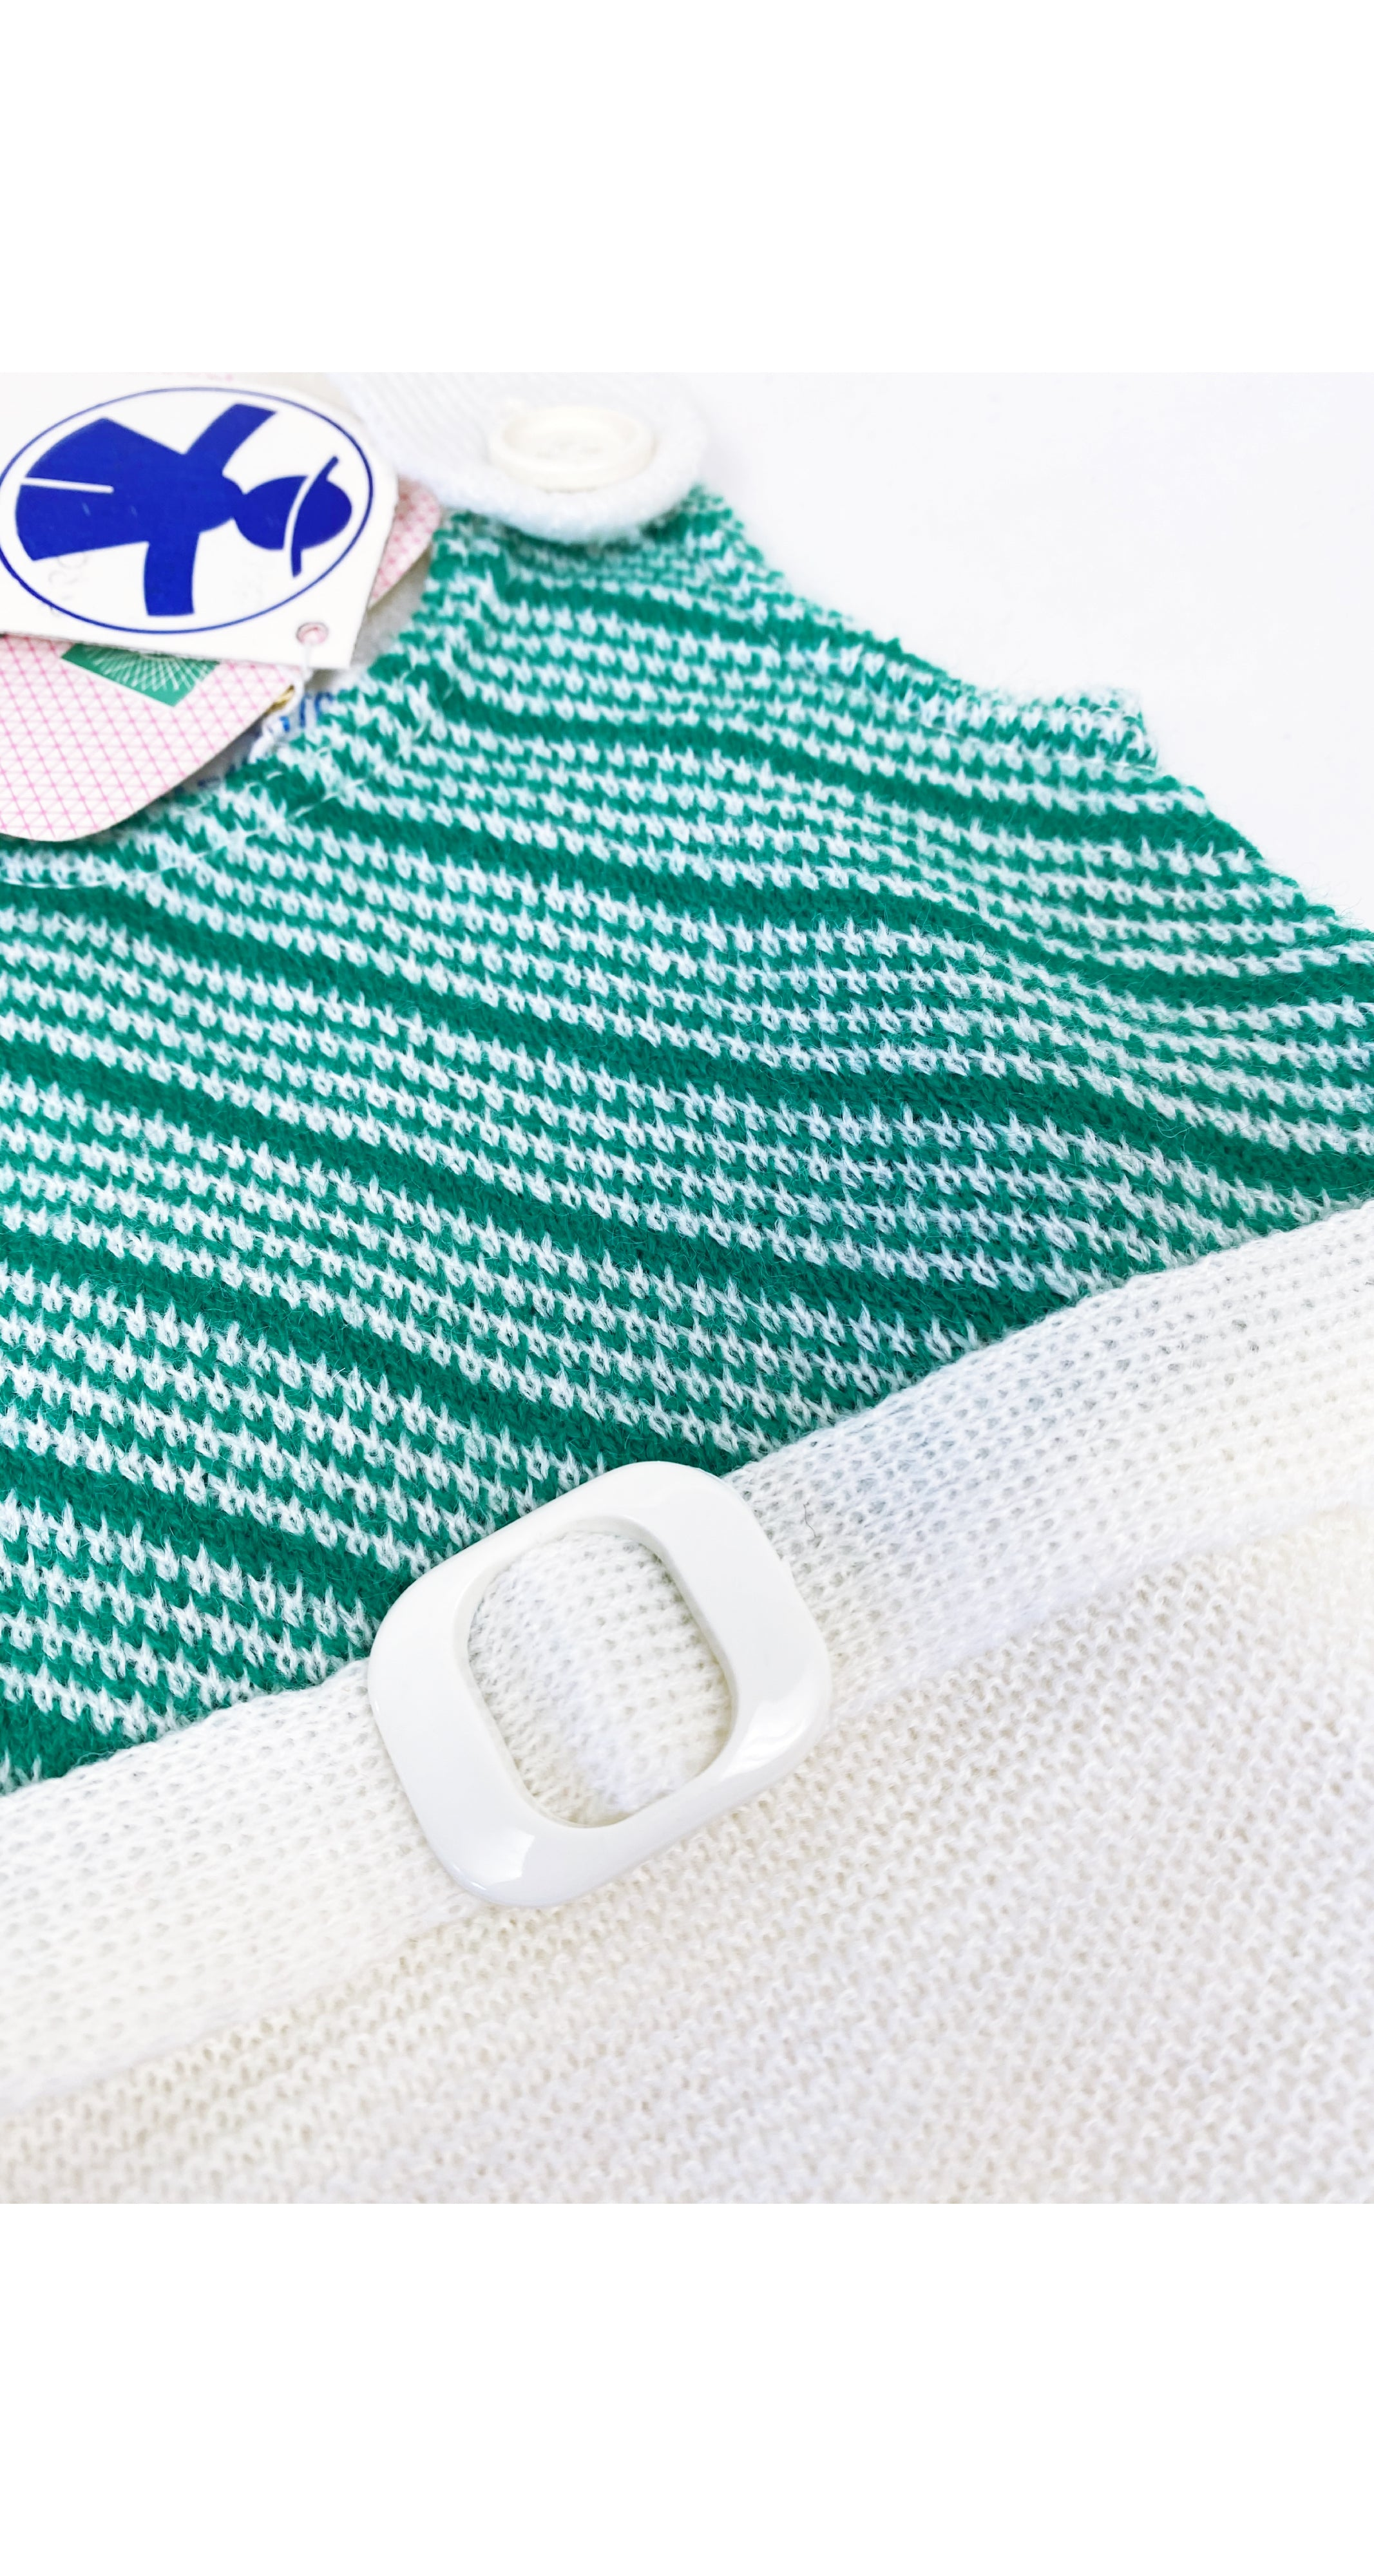 1970s NOS Girl's Green & White Knit Dress 3M